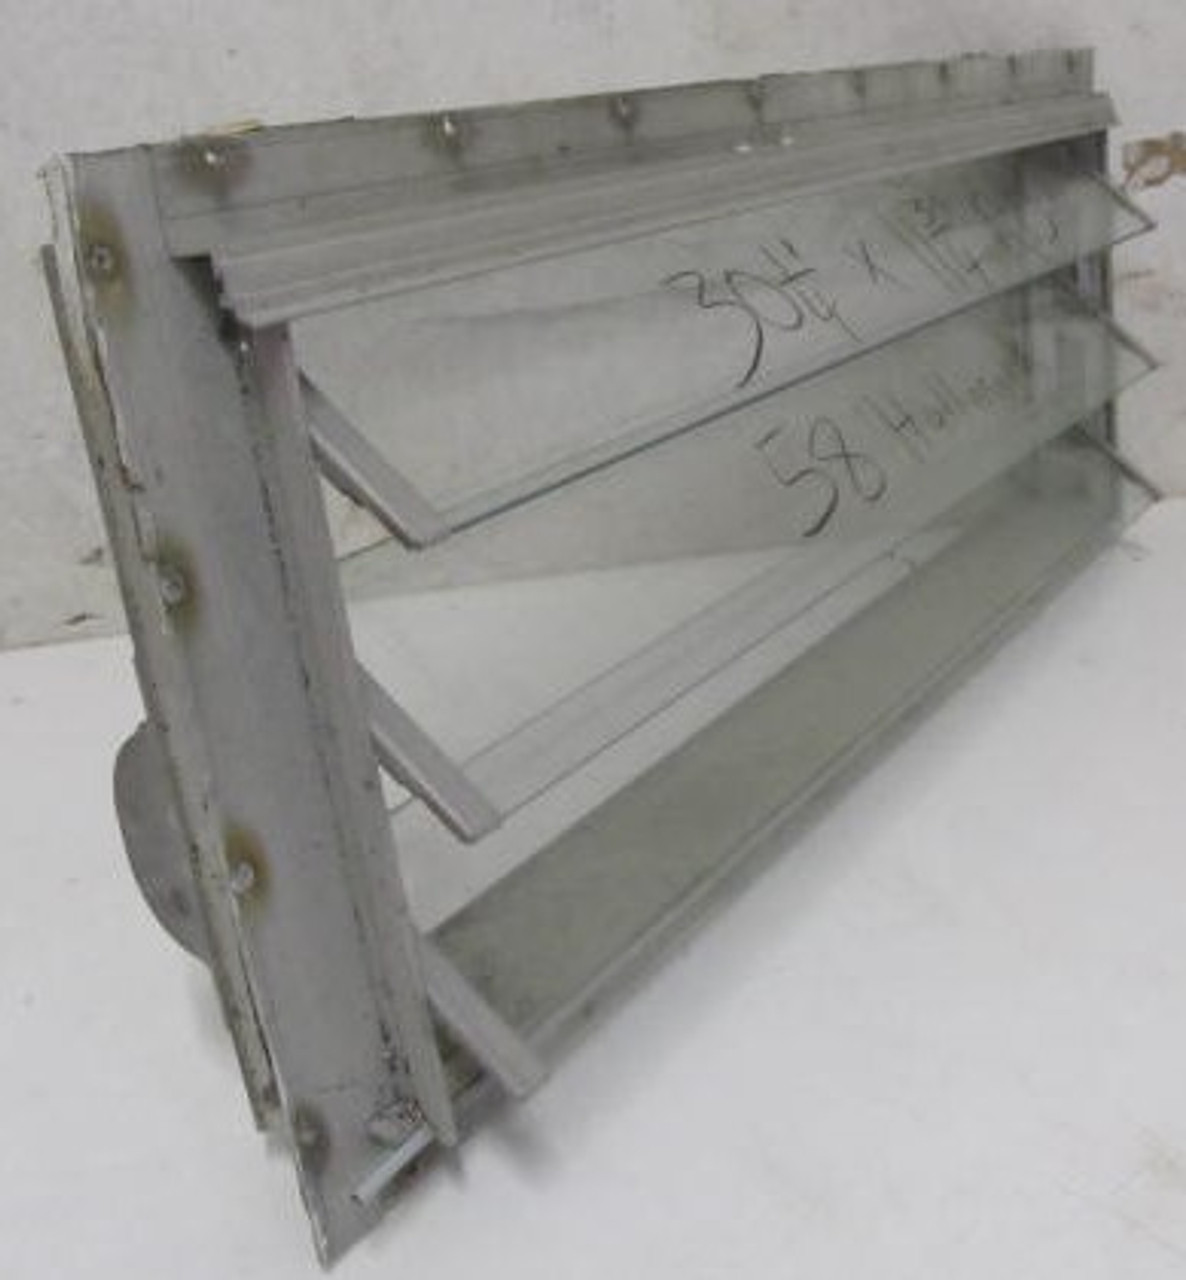 "31-13/16"" x 13-5/16"" 3 Pane Jalousie Window (missing screen) (BP369)"